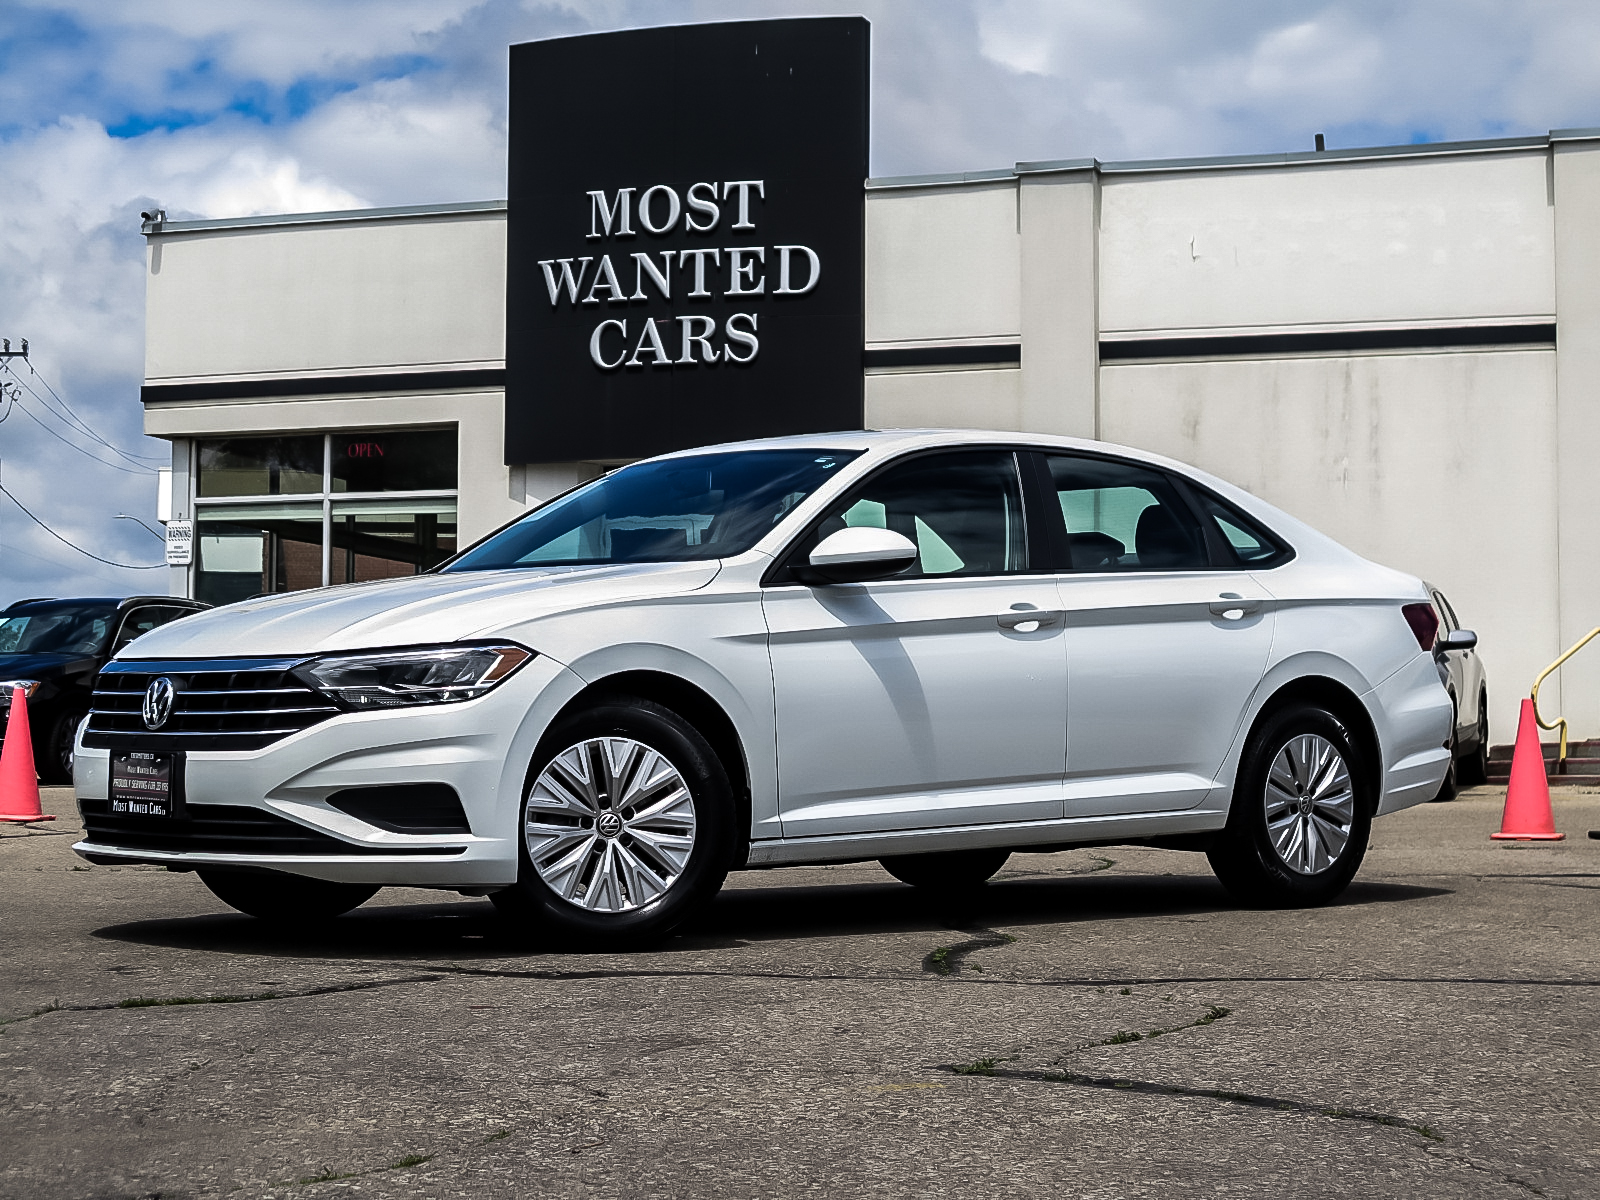 used 2019 Volkswagen Jetta car, priced at $17,742